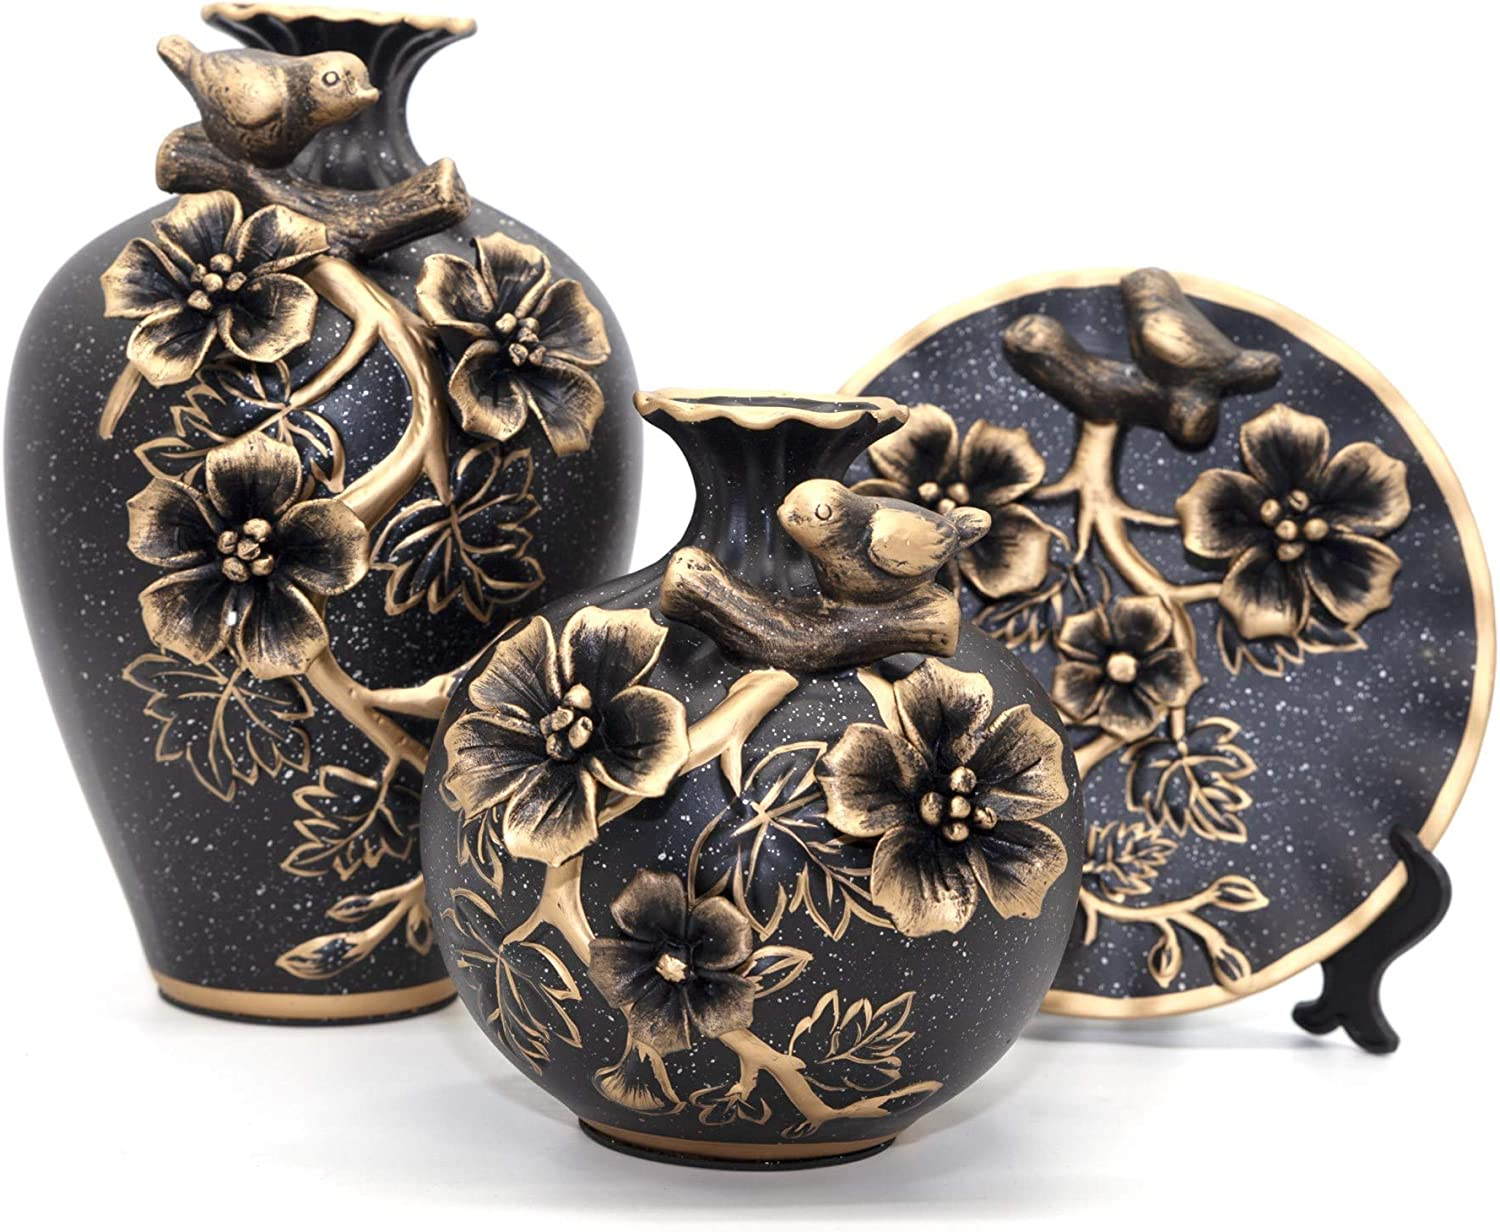 NEWQZ Classical Decorative Ceramic Vase Set of 3 Chinese Vases for Home Decor, with 3D Flower Decoration(Black)